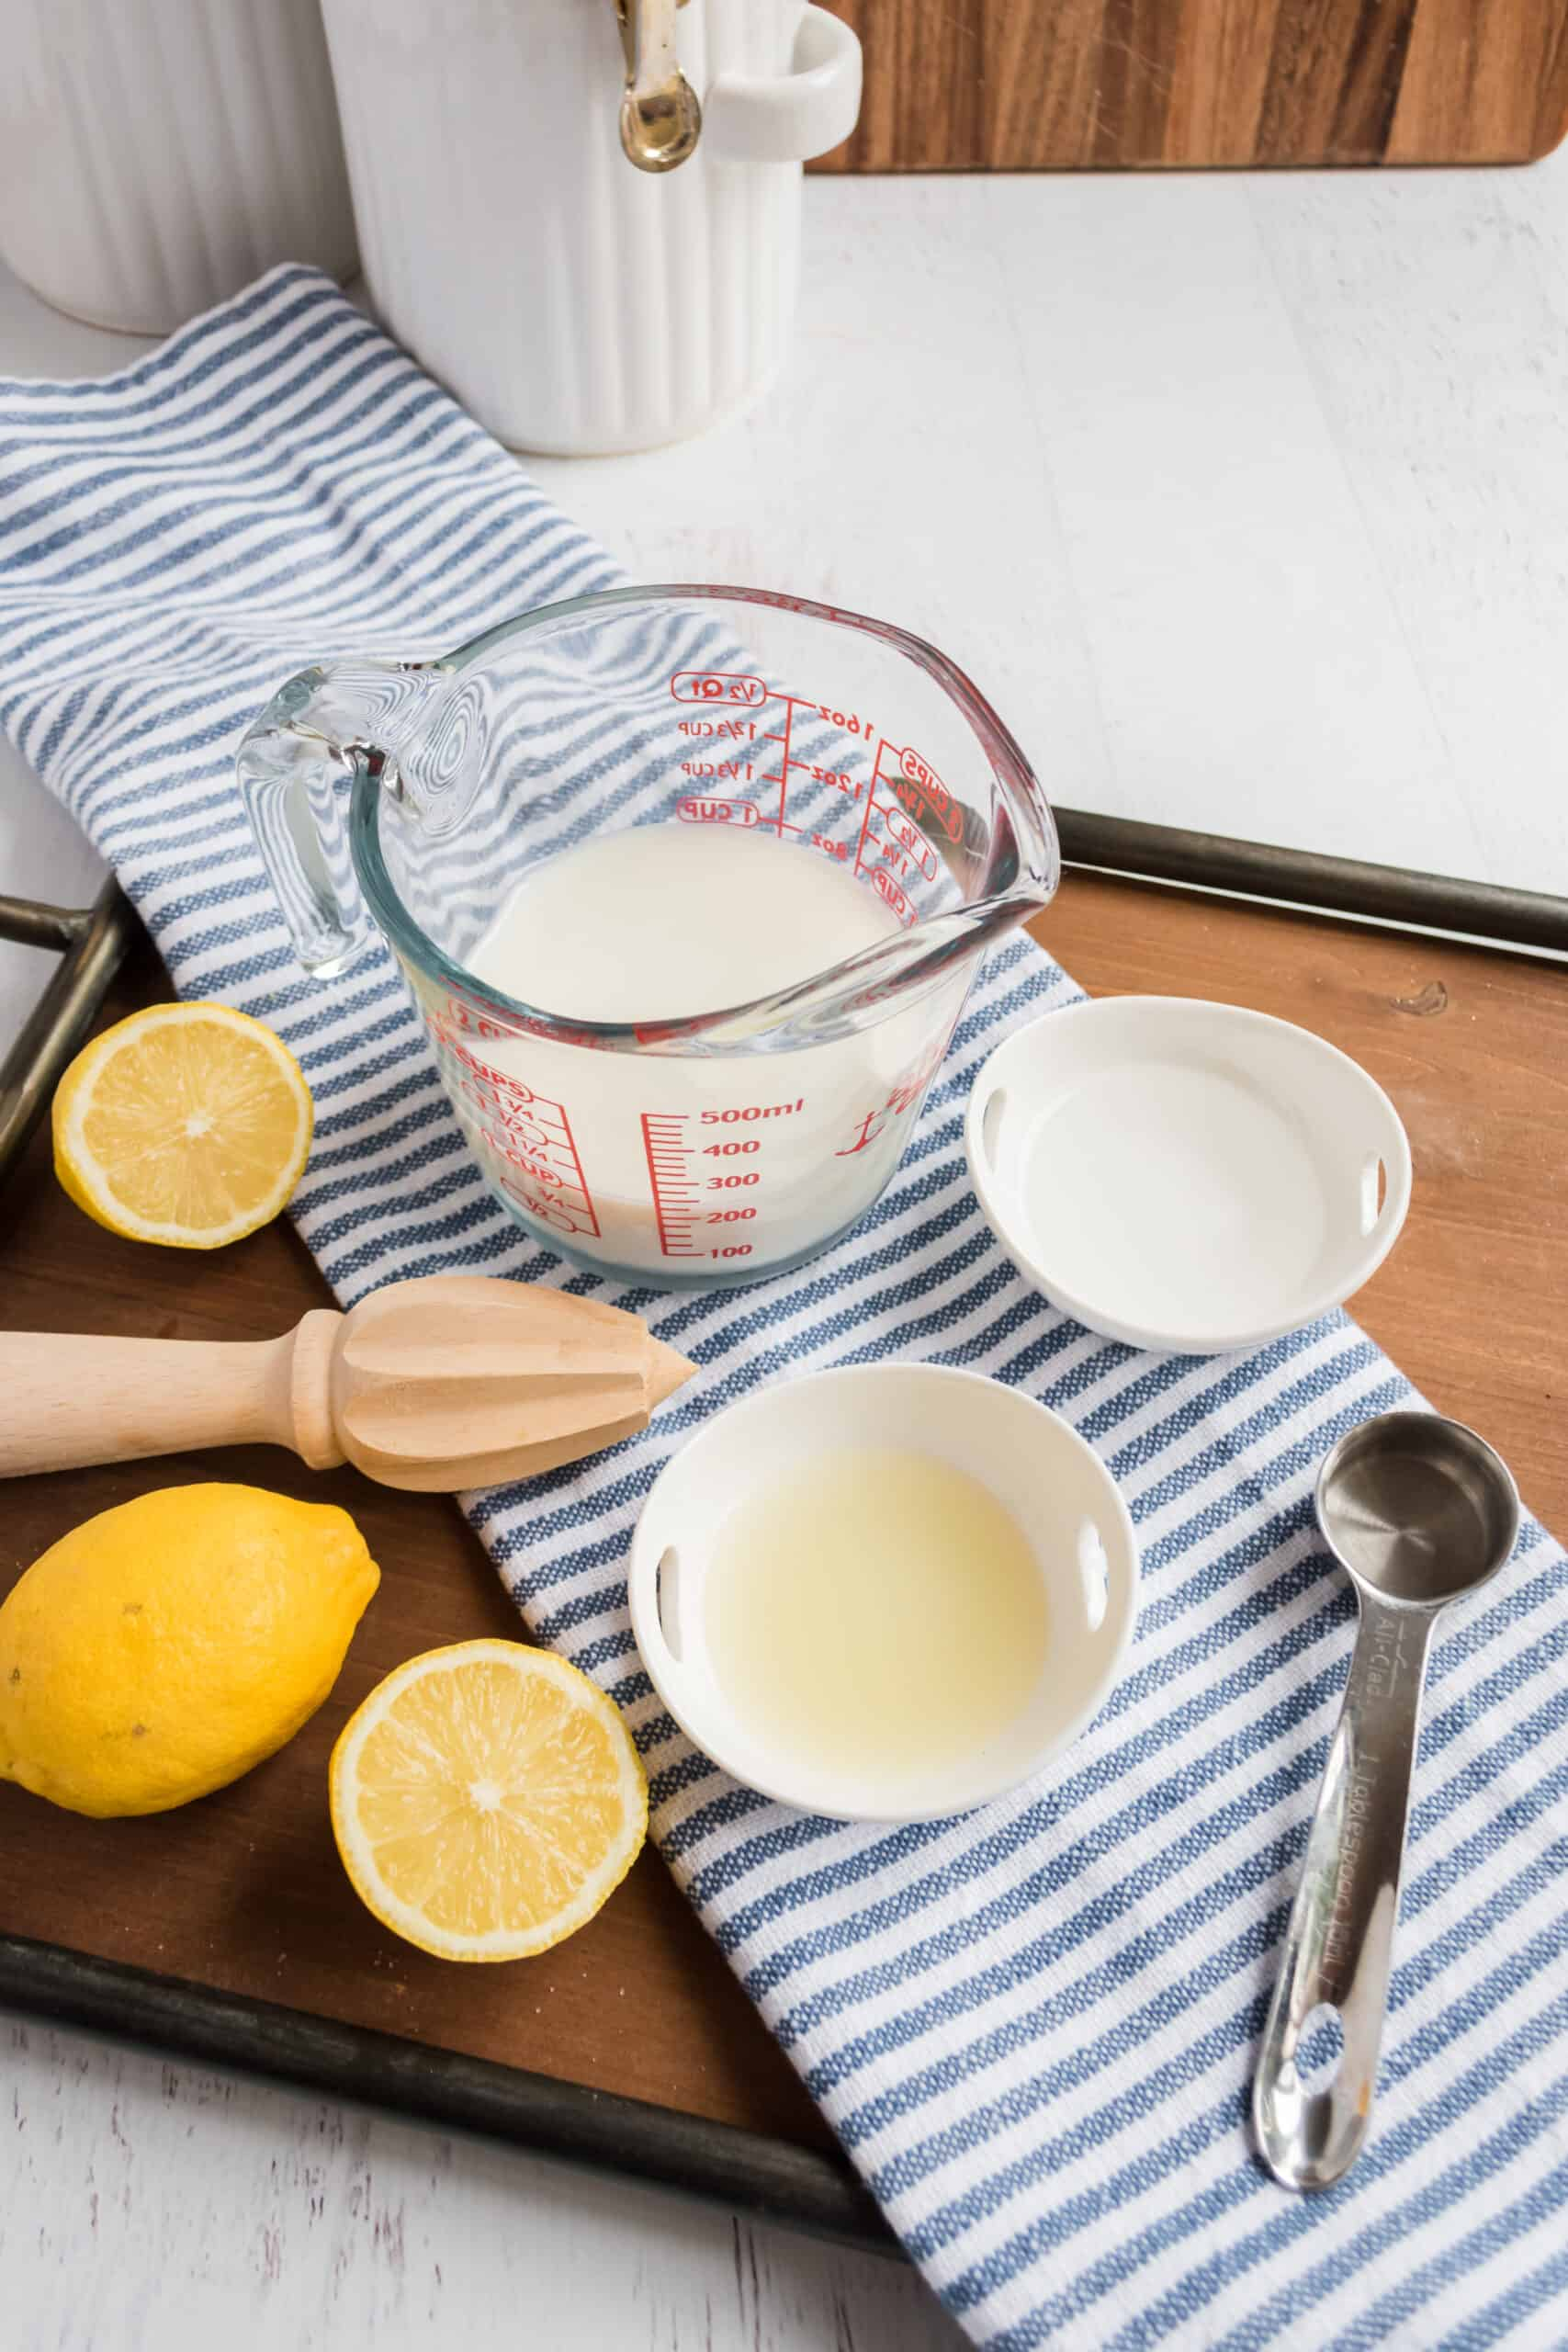 How to make homemade buttermilk with lemon juice and milk.